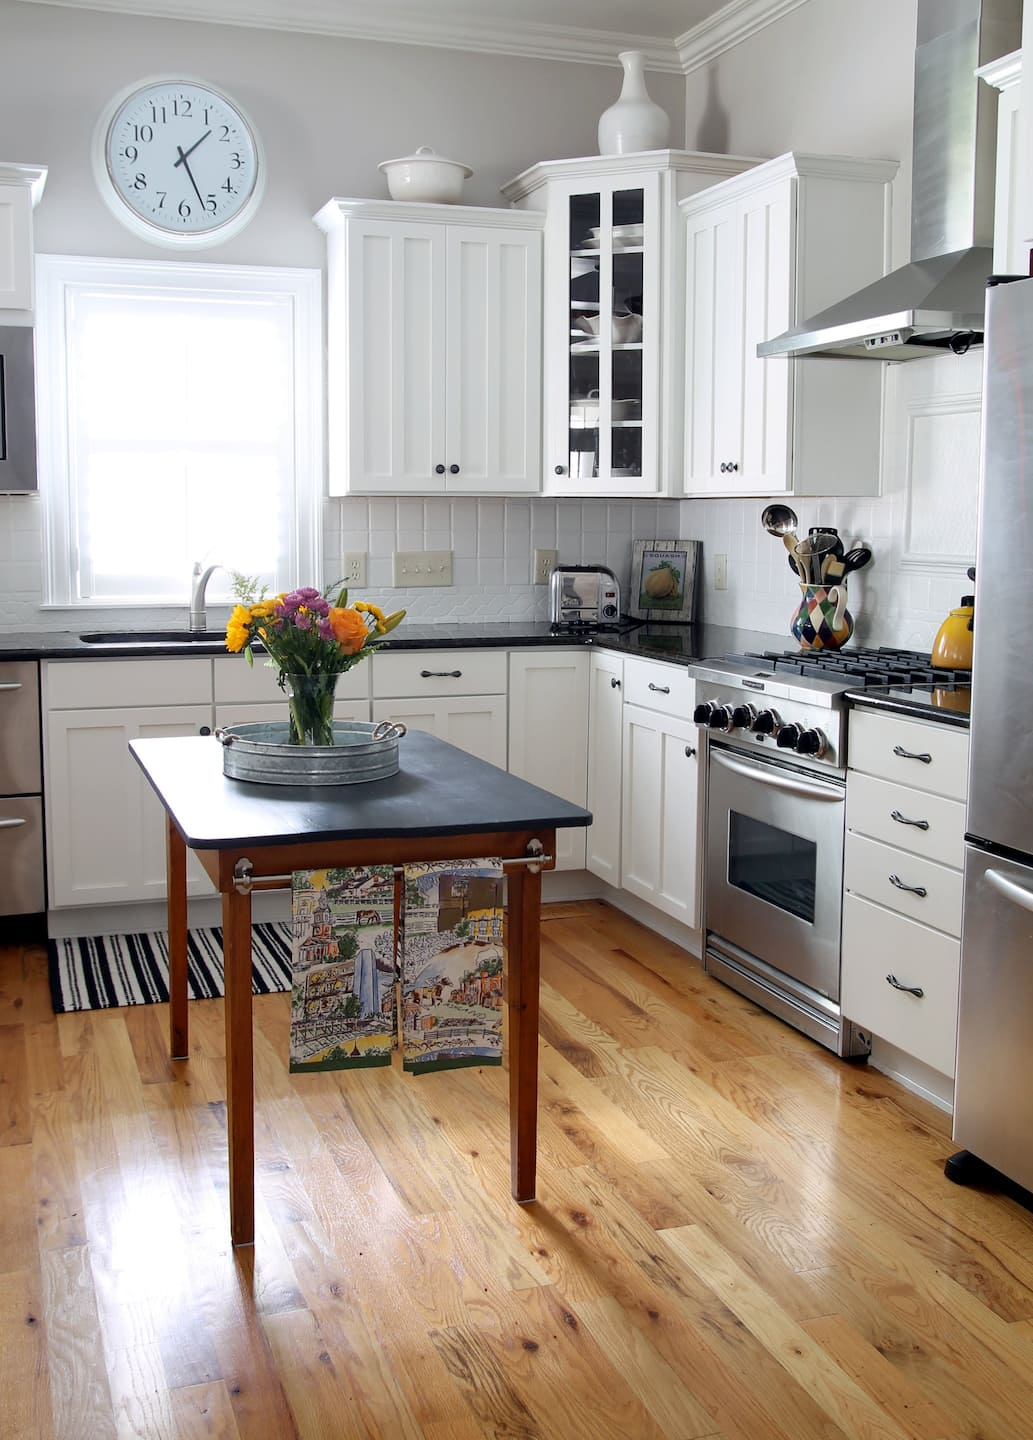 Kitchen with White Painted Cabinets and White Painted Backsplash